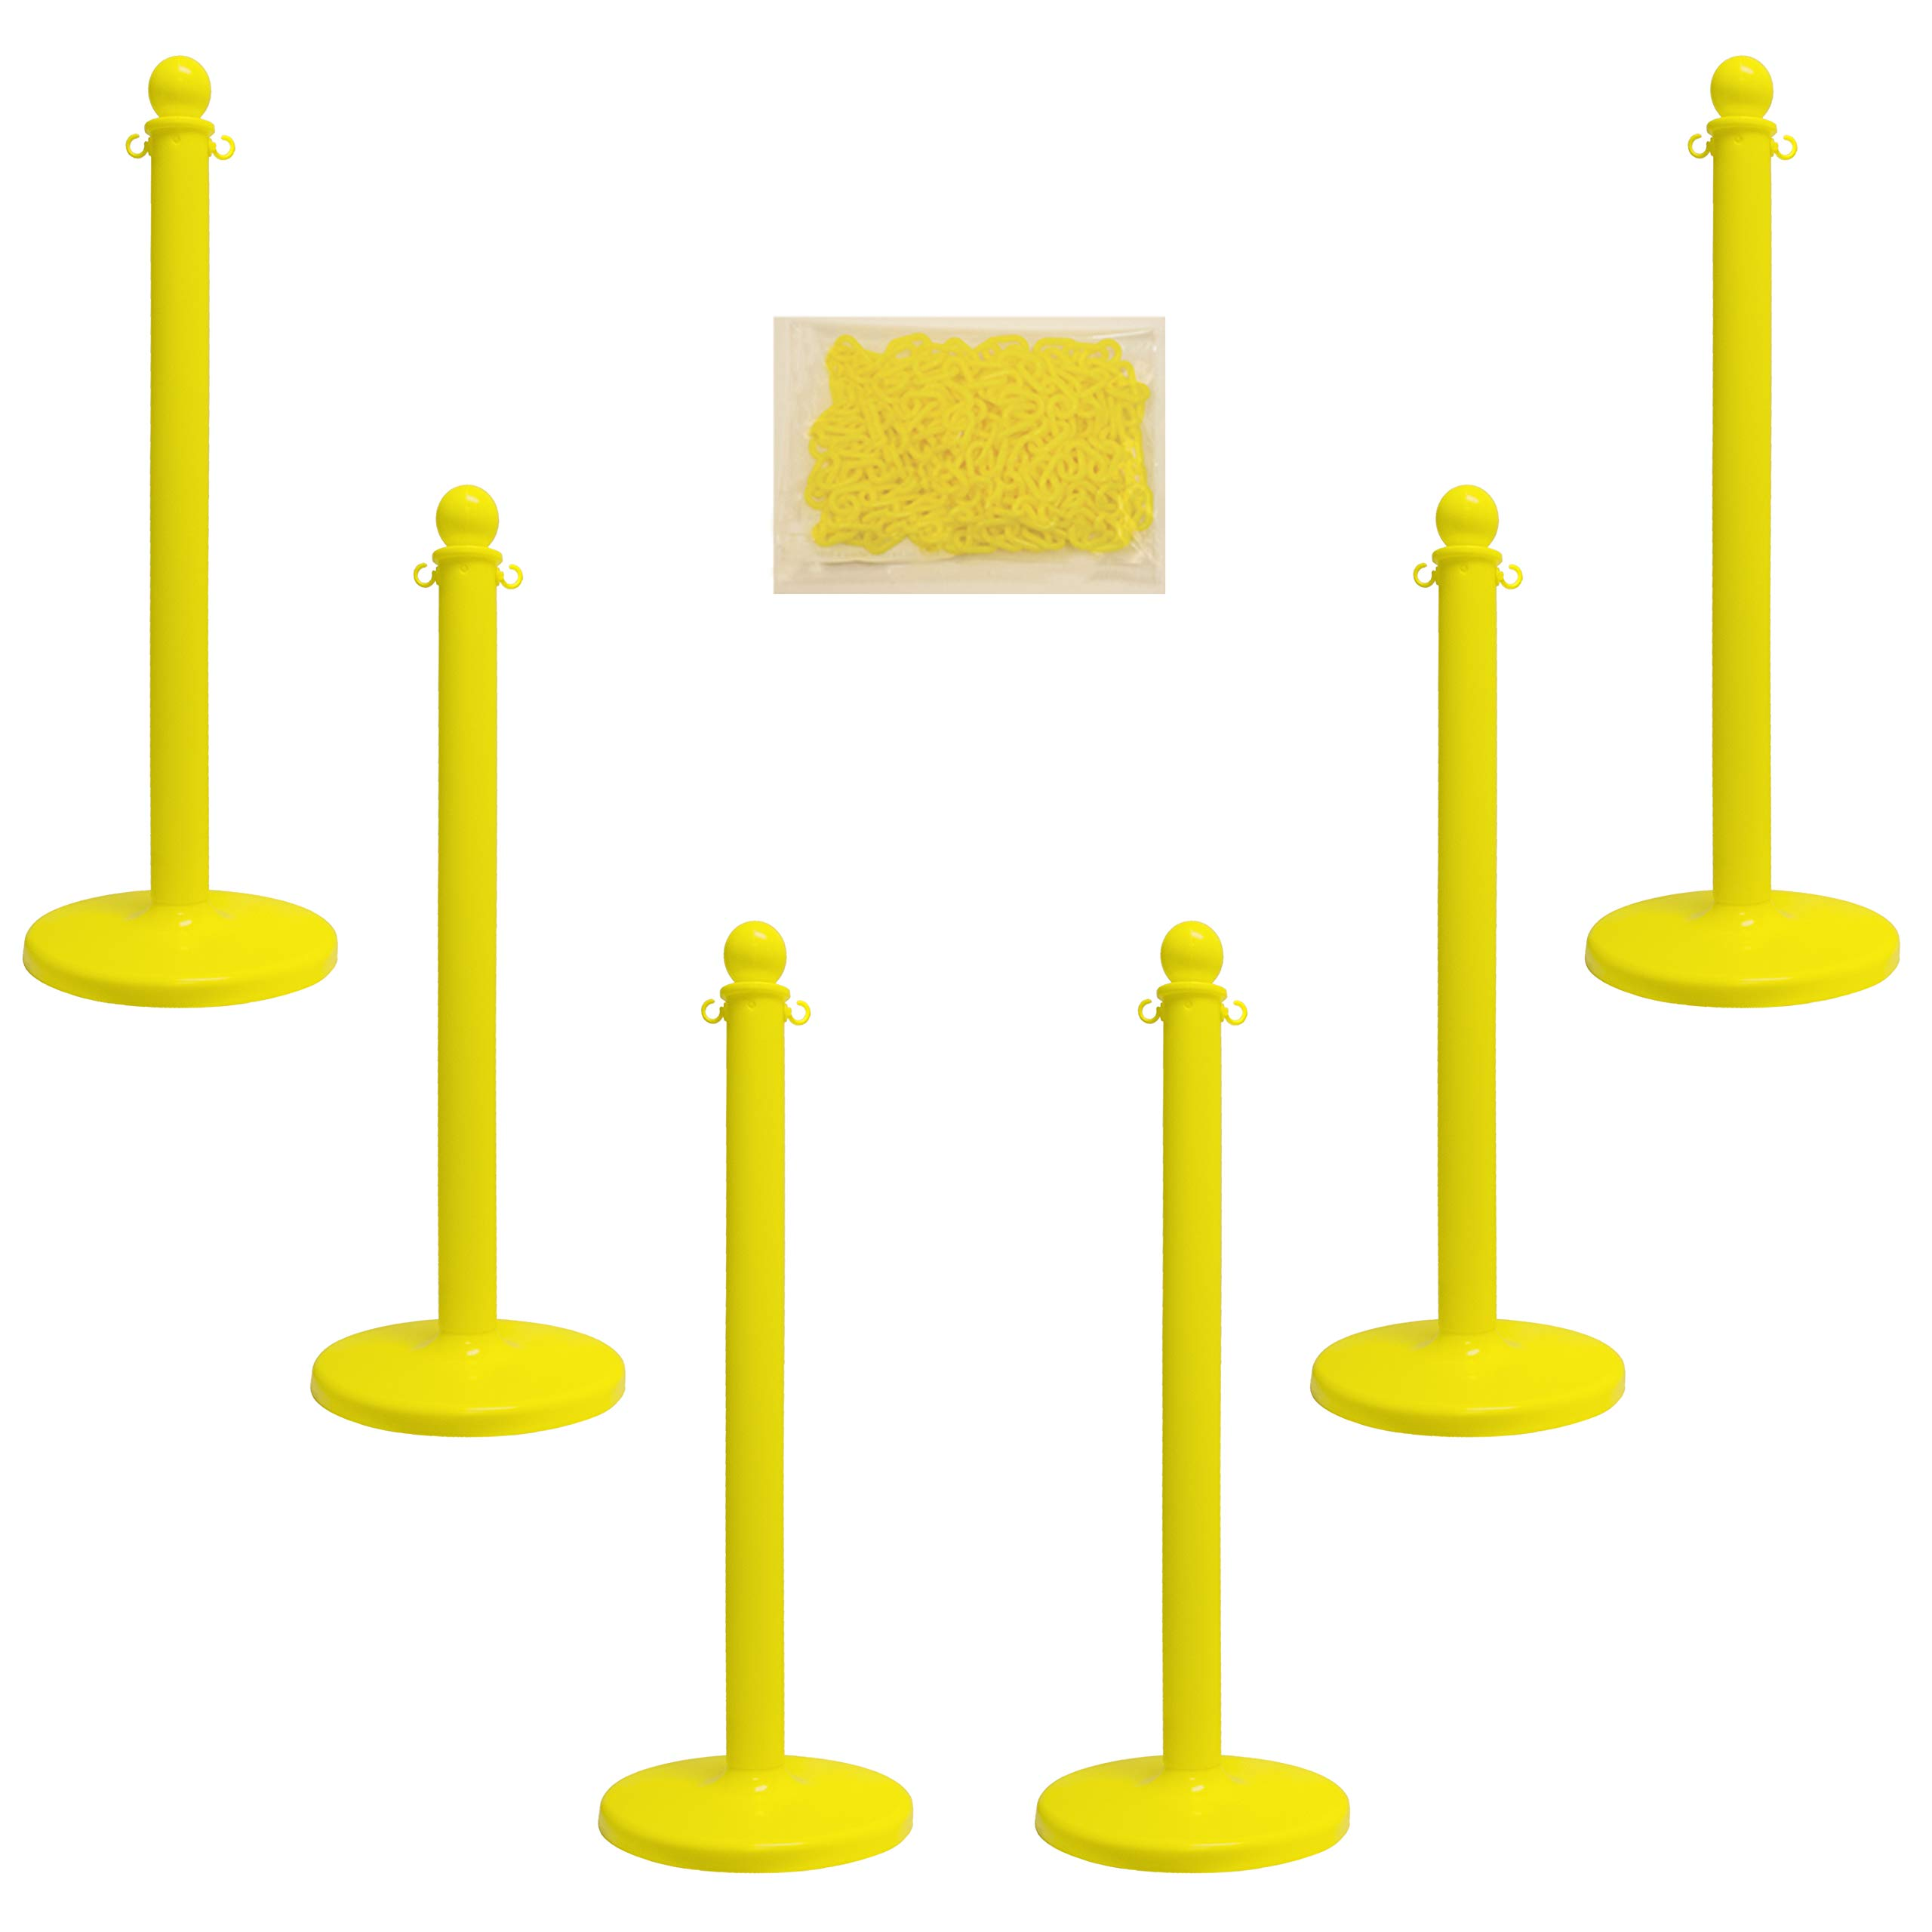 Mr. Chain Plastic Stanchion Kit with 50 Feet of 2-Inch Link Chain and C-Hooks, Yellow, Pack of 6 (71102-6) by Mr. Chain